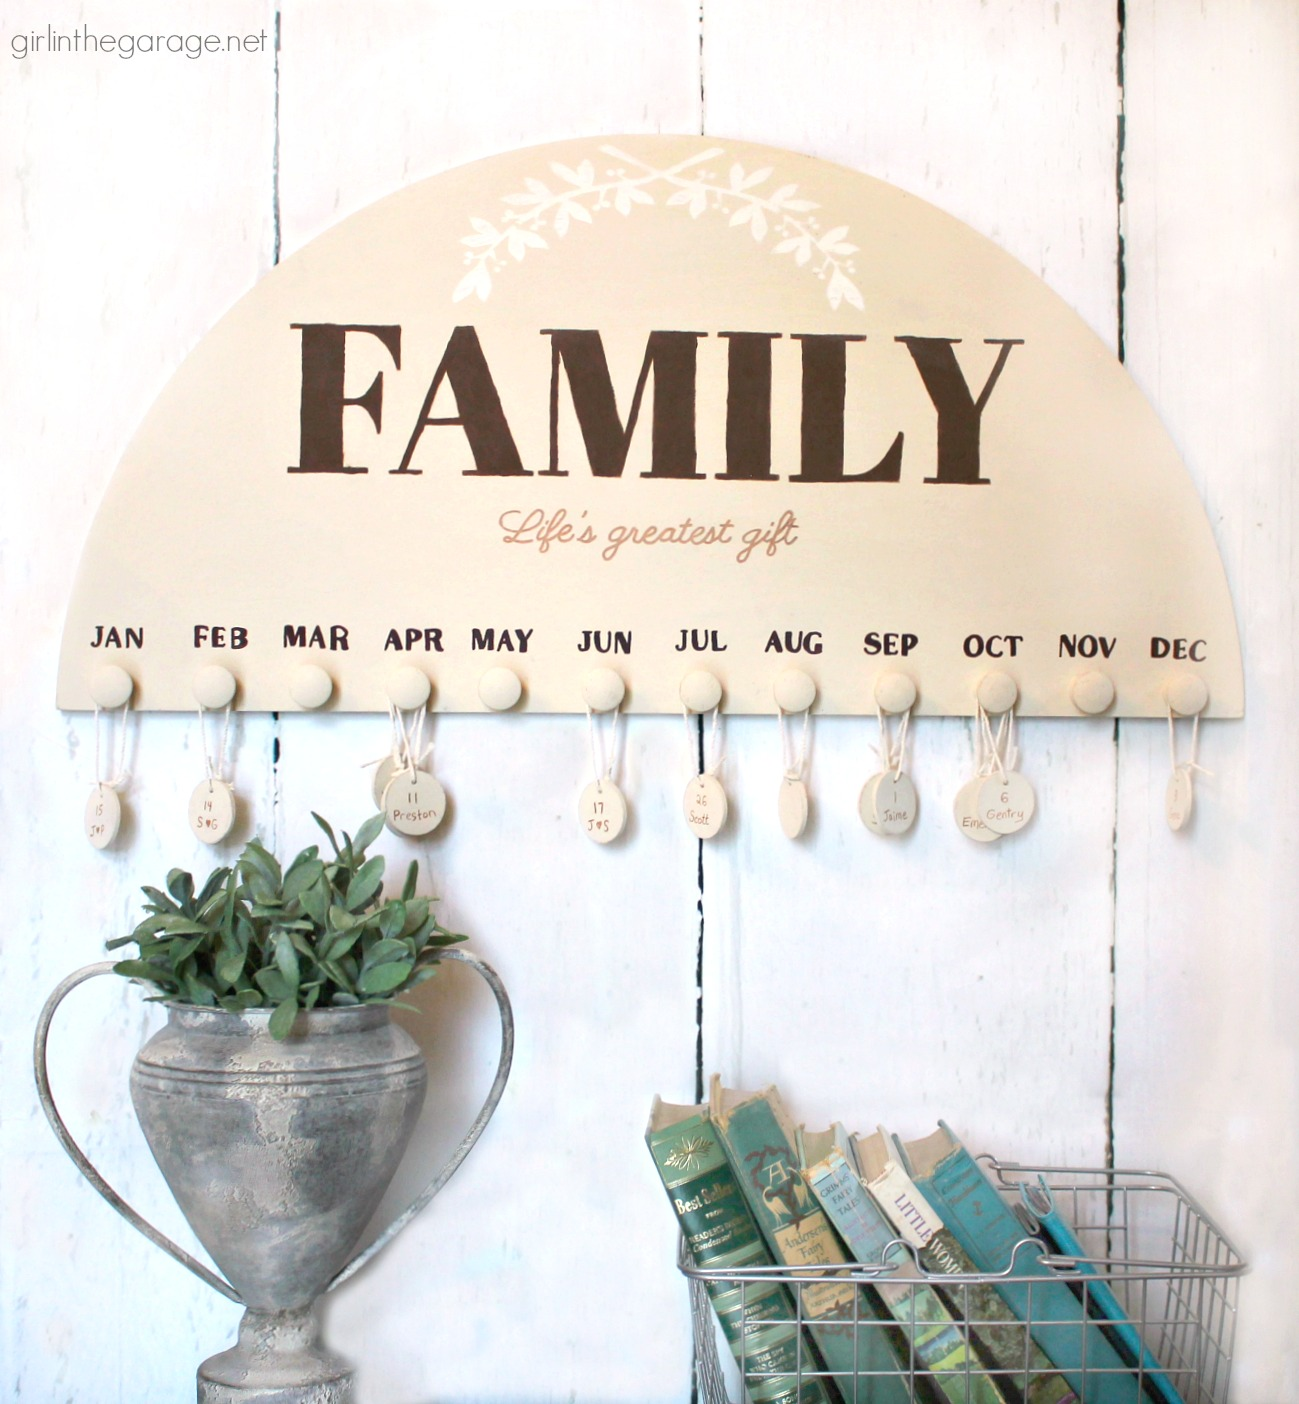 Thrifted art to DIY family birthday calendar - Remember important dates with a keepsake wall calendar - Step by step tutorial by Girl in the Garage